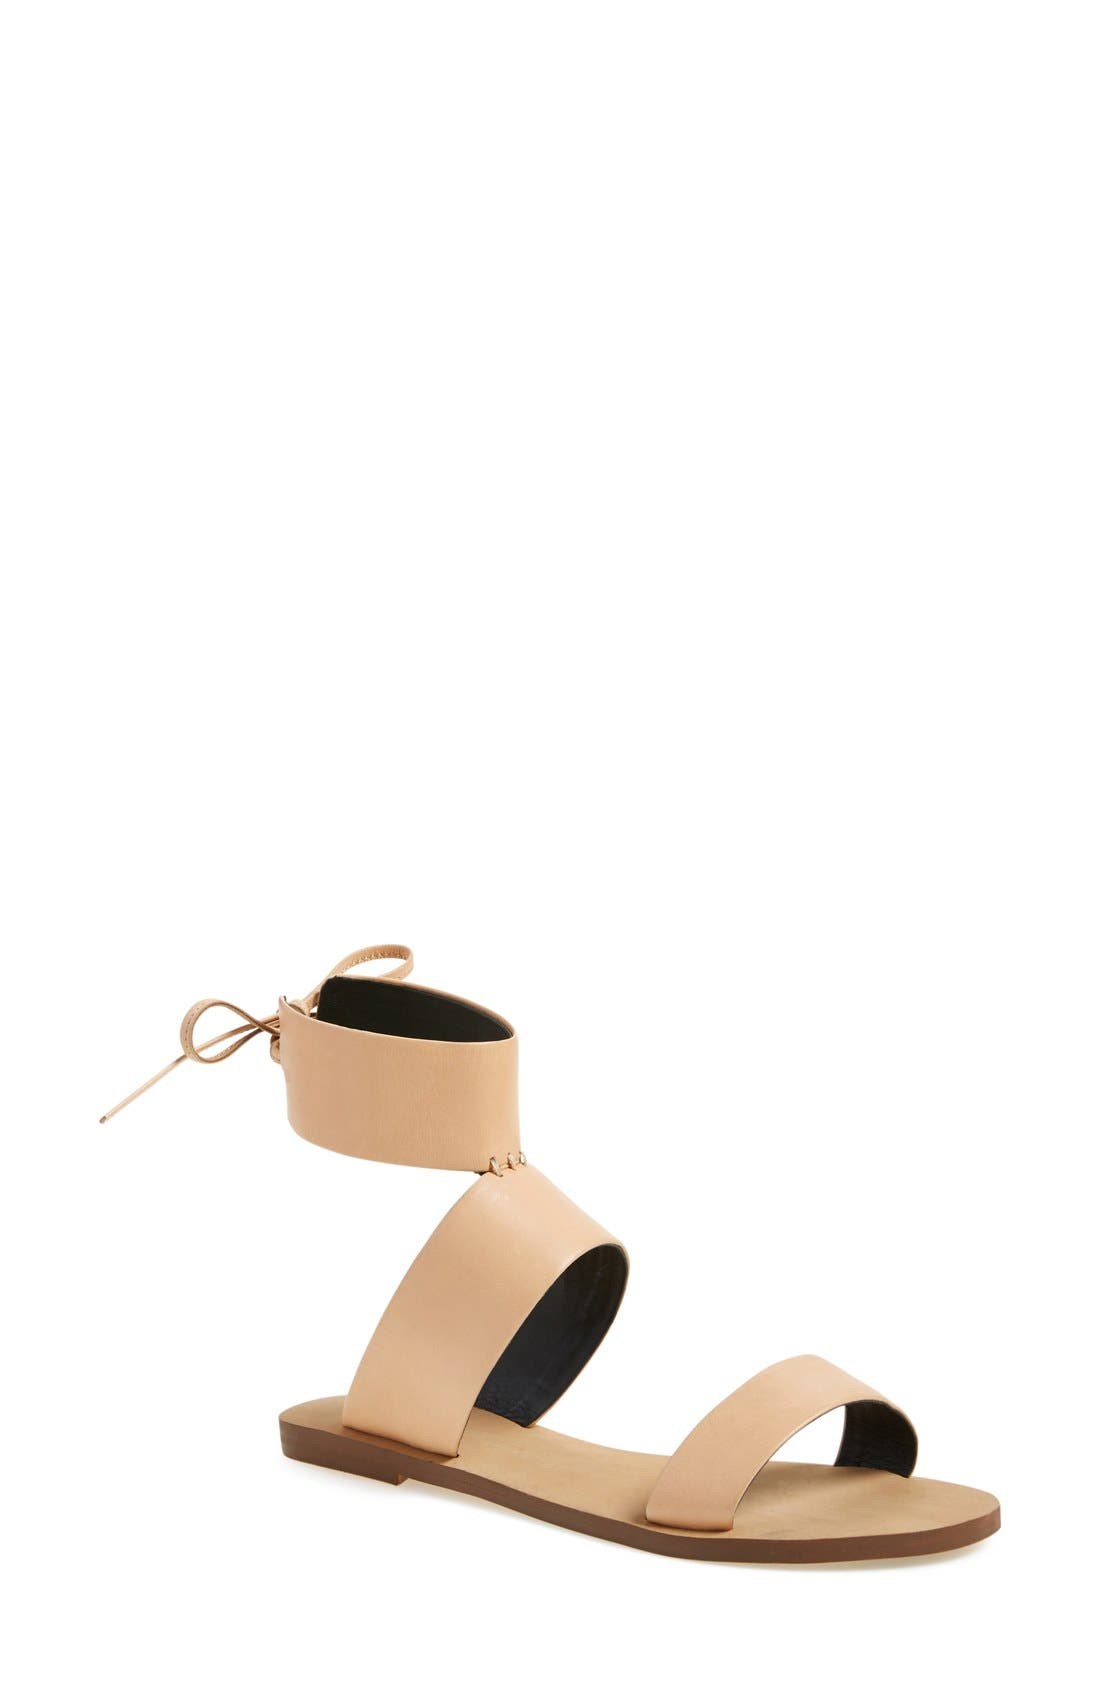 Alternate Image 1 Selected - Rebecca Minkoff 'Emma' Ankle Cuff Sandal (Women)